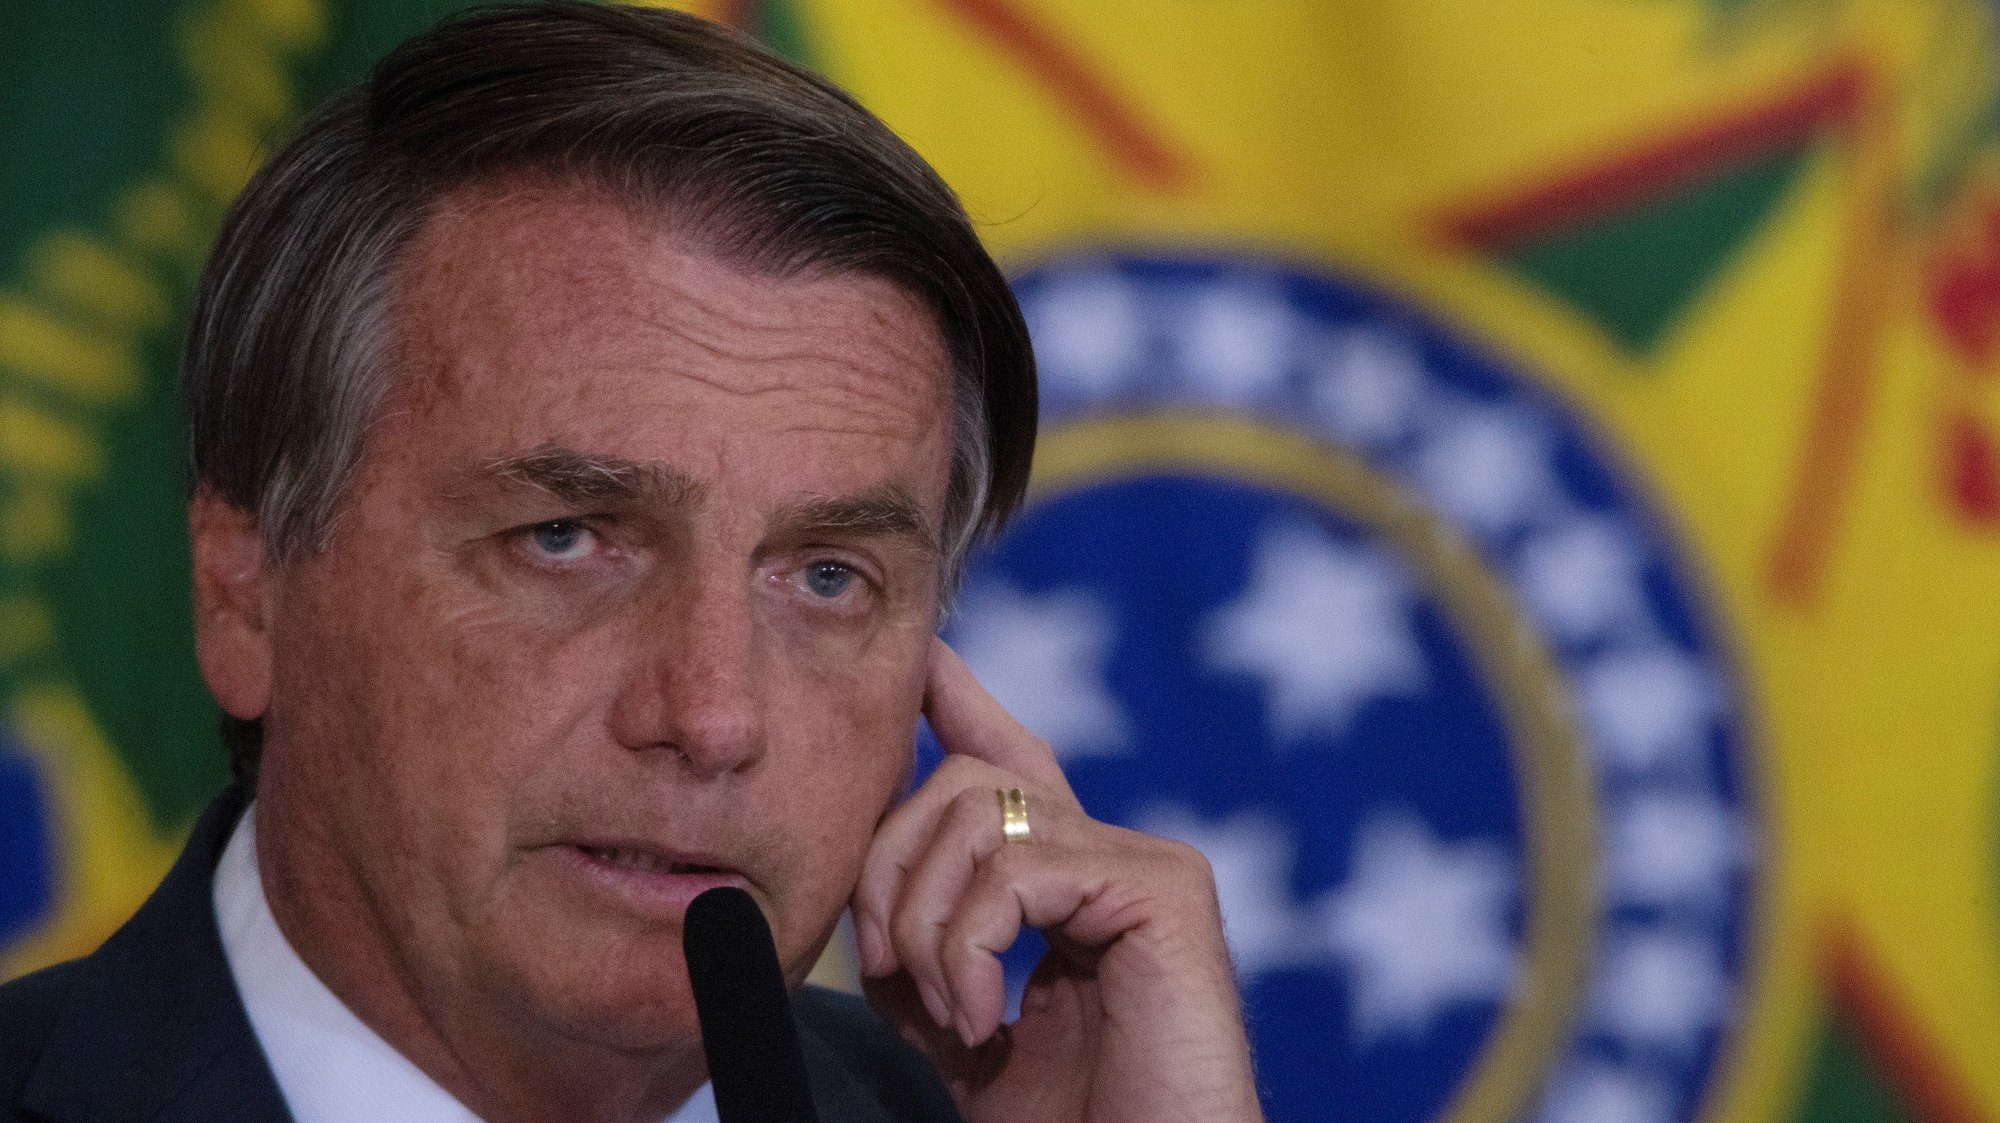 epa09466474 The President of Brazil, Jair Bolsonaro, participates in a launch ceremony of the Safe Habite Program, in Brasilia, Brazil, 13 September 2021. Brazilian President Jair Bolsonaro announced a housing financing program aimed at police officers and public security personnel, of whom he said that 'every day they risk their lives' for the whole of society.  EPA/Joedson Alves